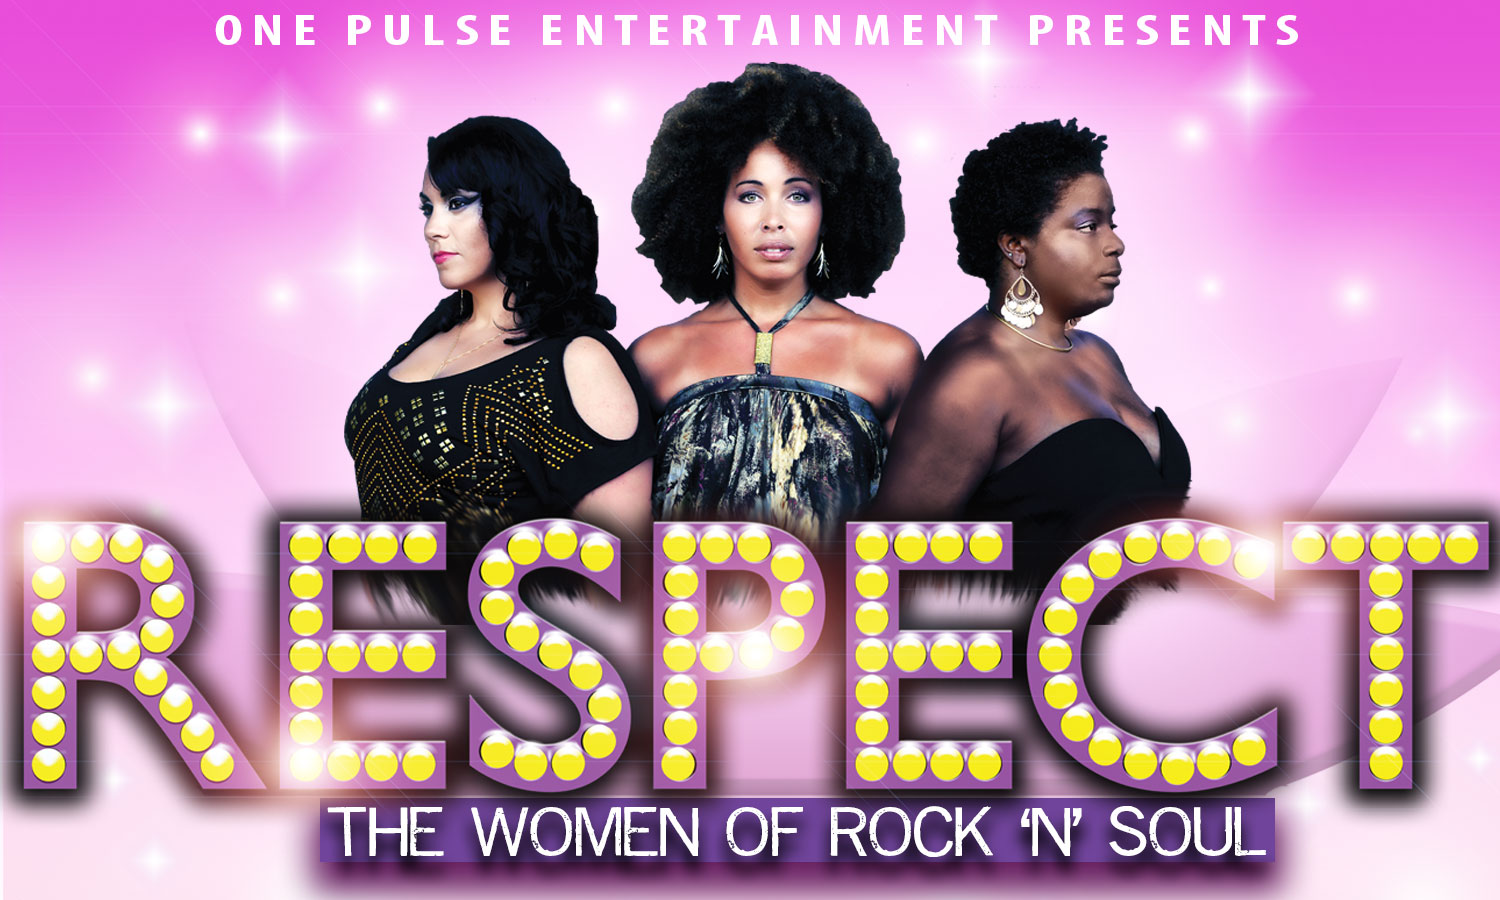 1Pulse-Show-promo-banners-for-website-RESEPCT.jpg